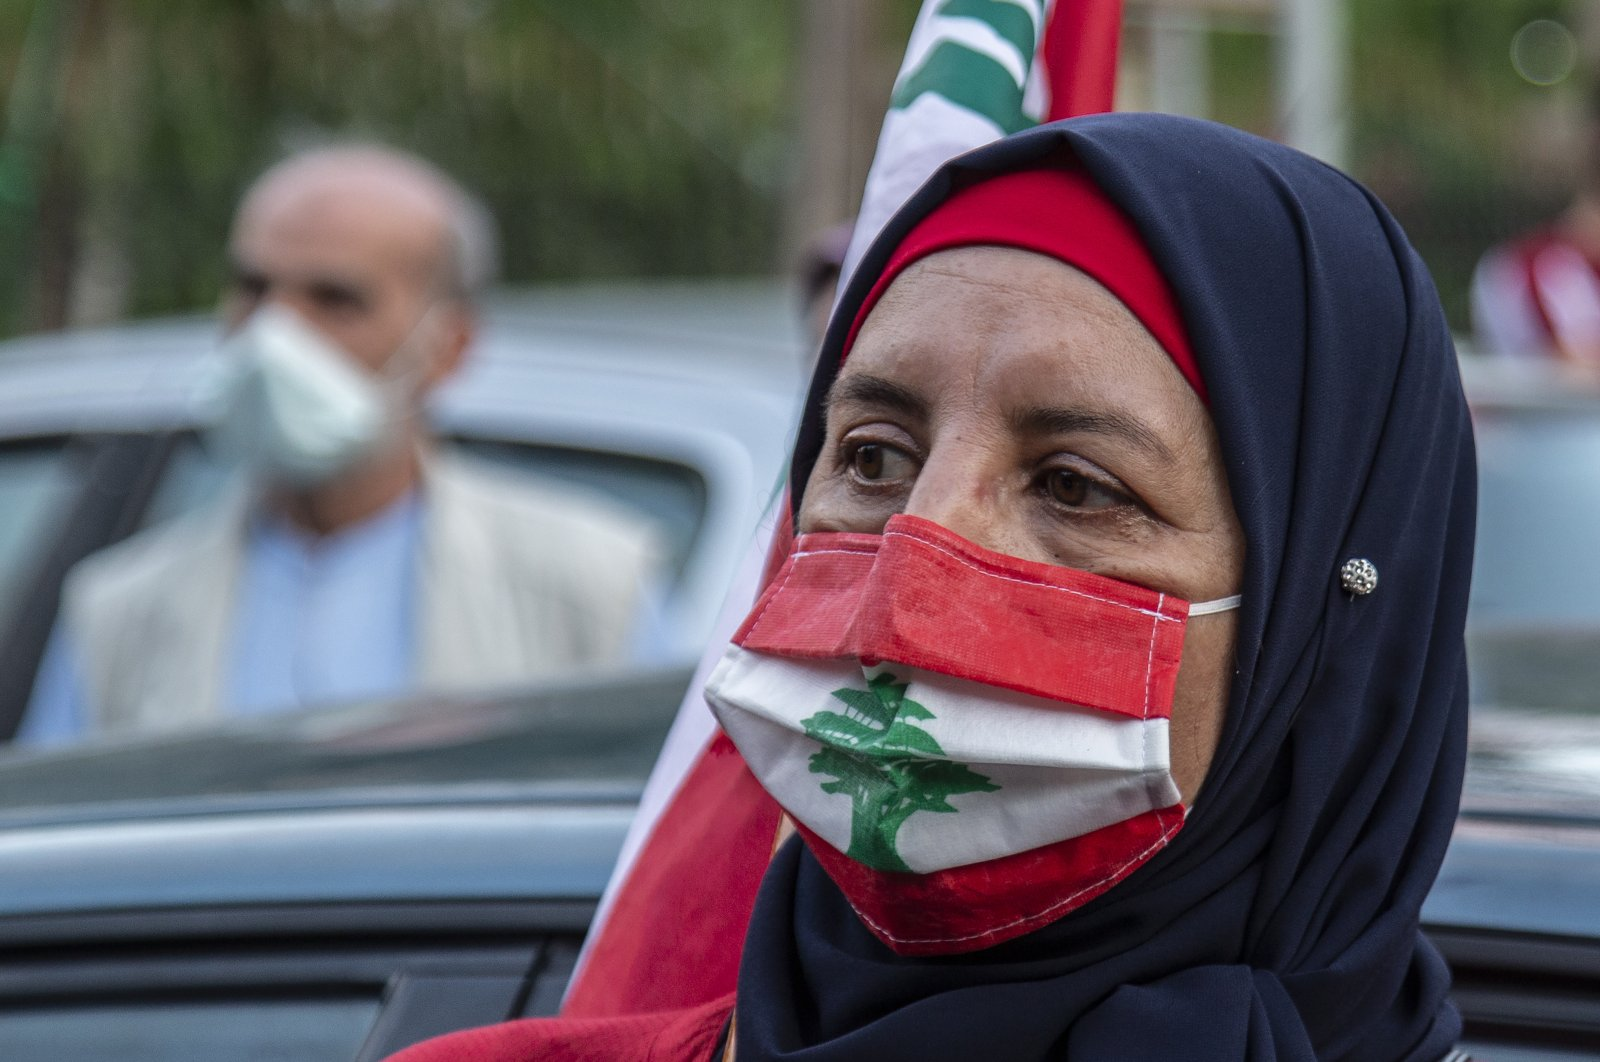 A participant wears a Lebanon flag-themed face mask as she attends a rally in front of the Lebanese interior ministry during a protest over the economic and financial crisis, in al-Hamra area of Beirut, Lebanon, May 29, 2020. (EPA Photo)